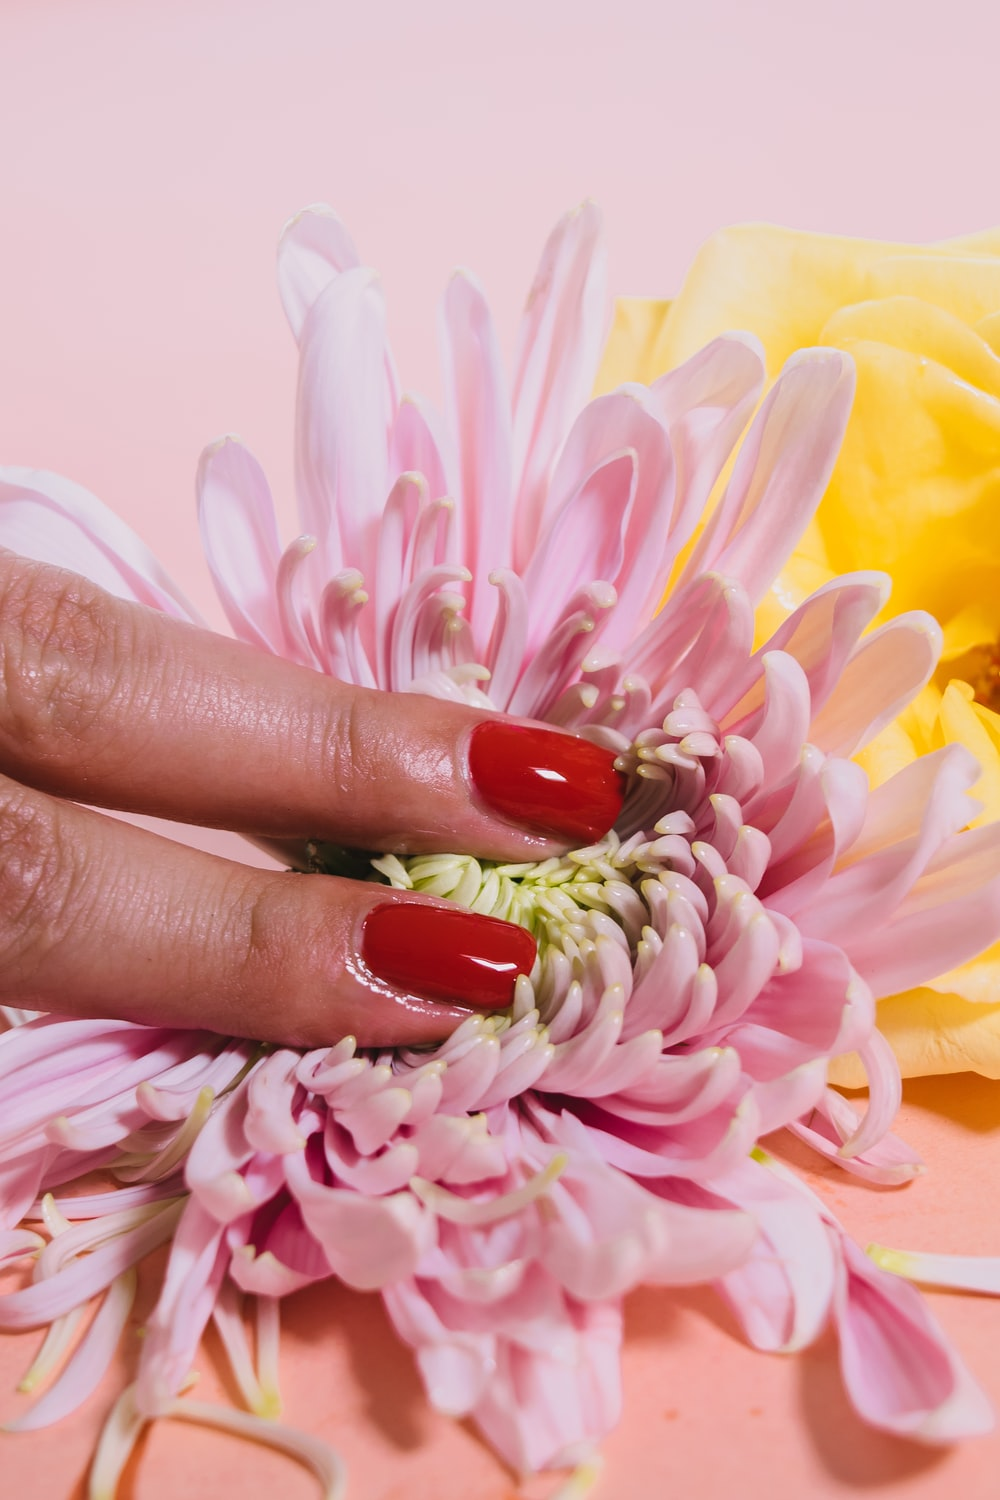 person pressing a chrysanthemum flower on pink surface